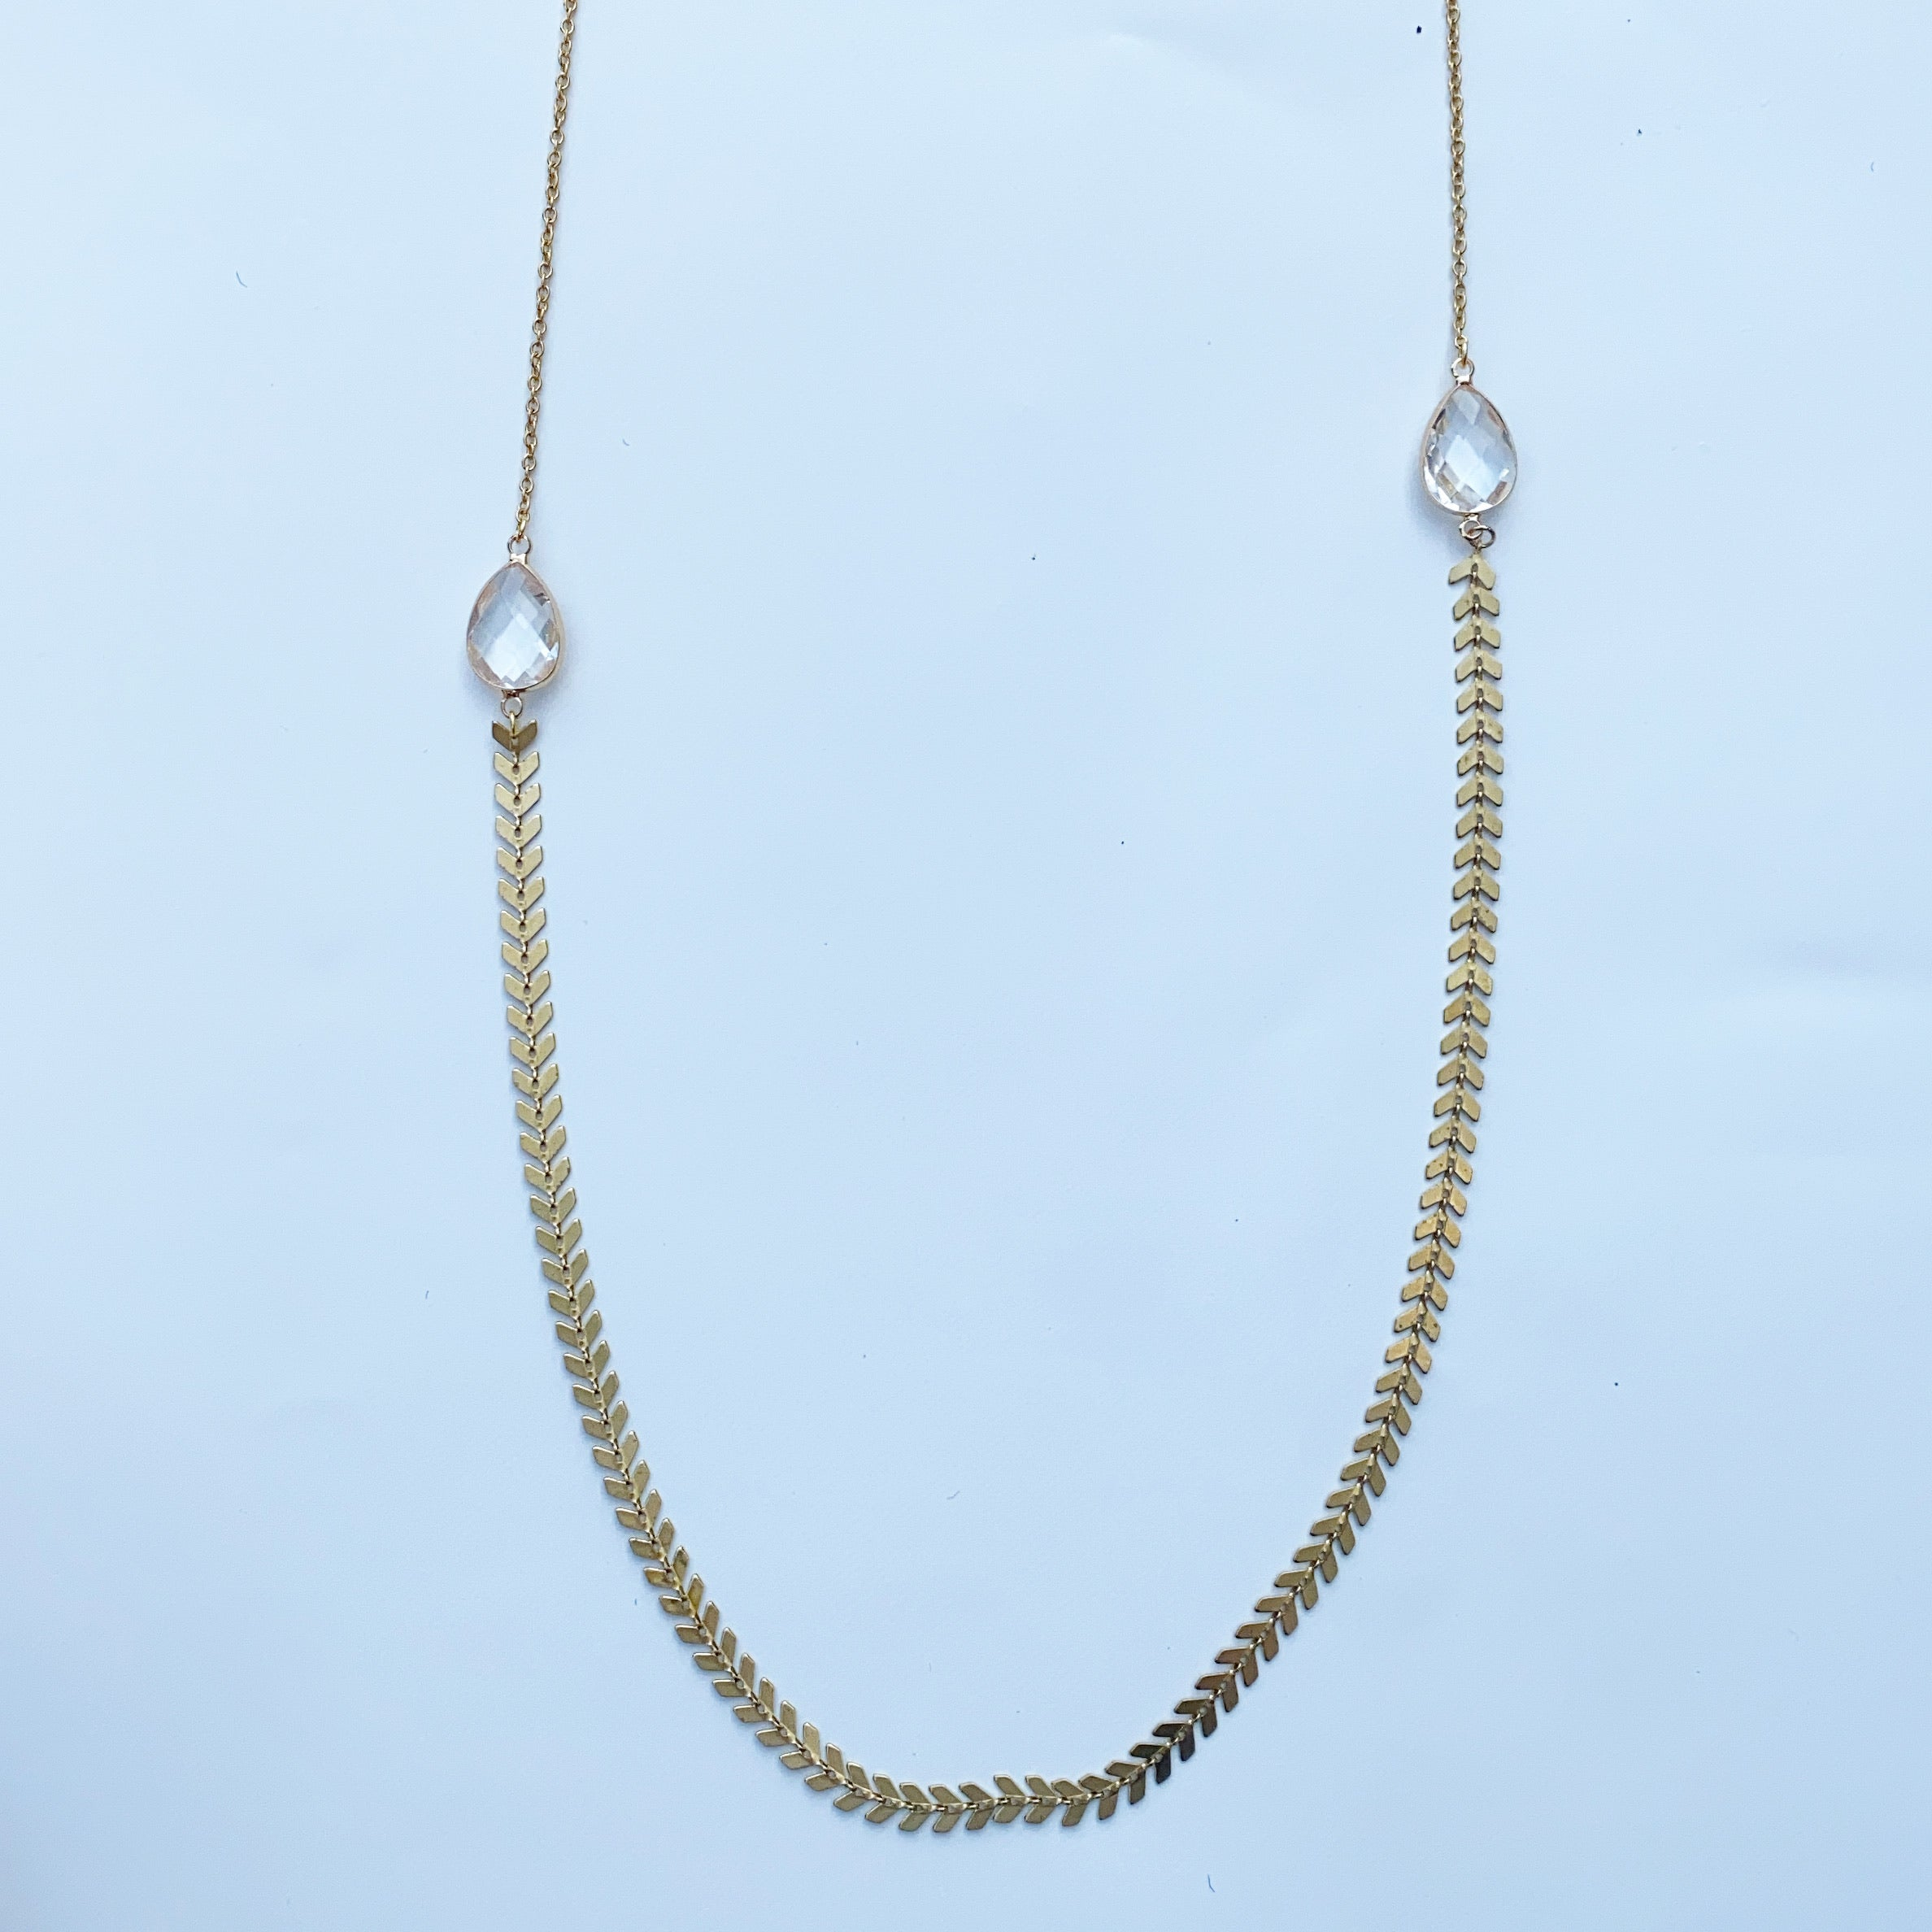 Fishbone and Clear Rhinestone Necklace